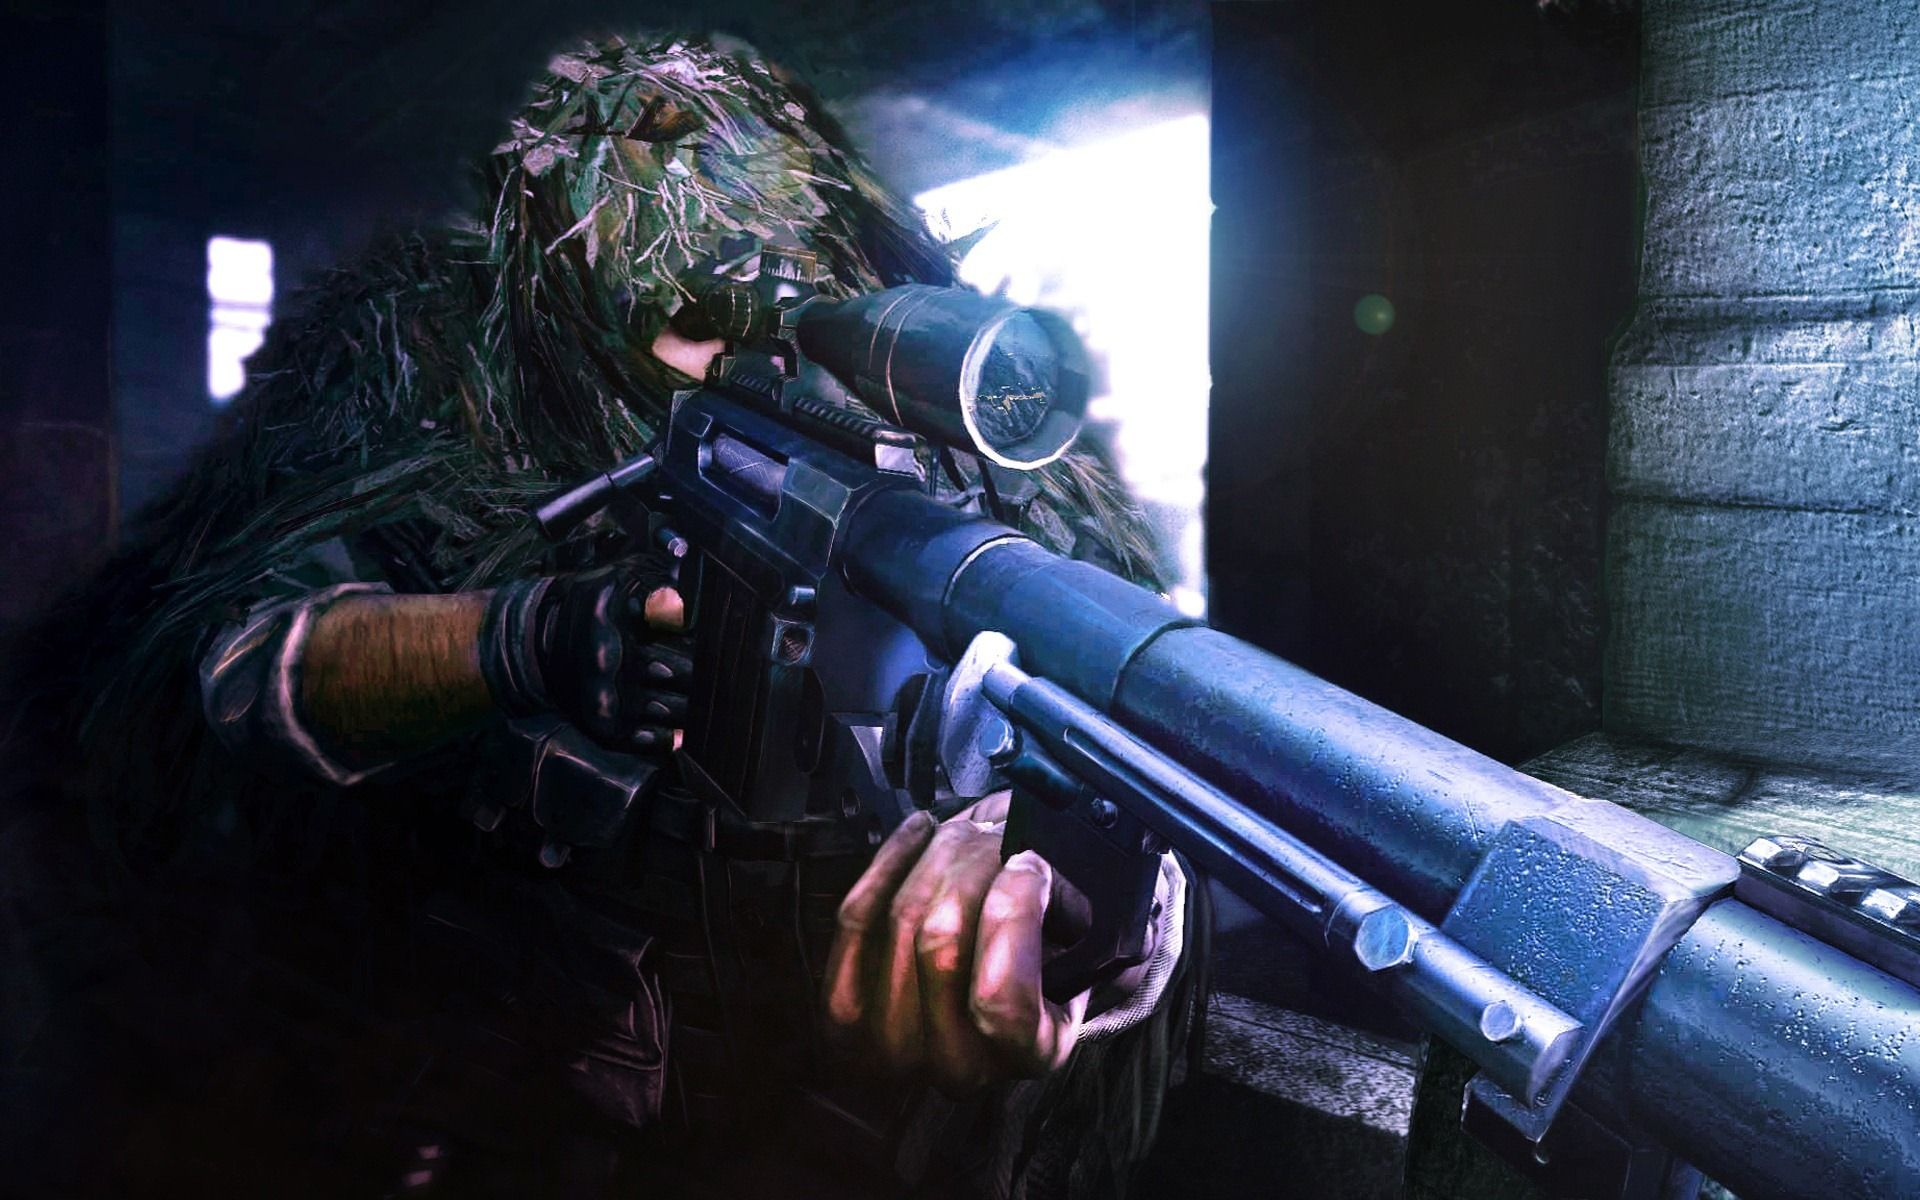 Sniper Ghost Warrior 2 Wallpapers Game Hd Wallpaper 1920x1200